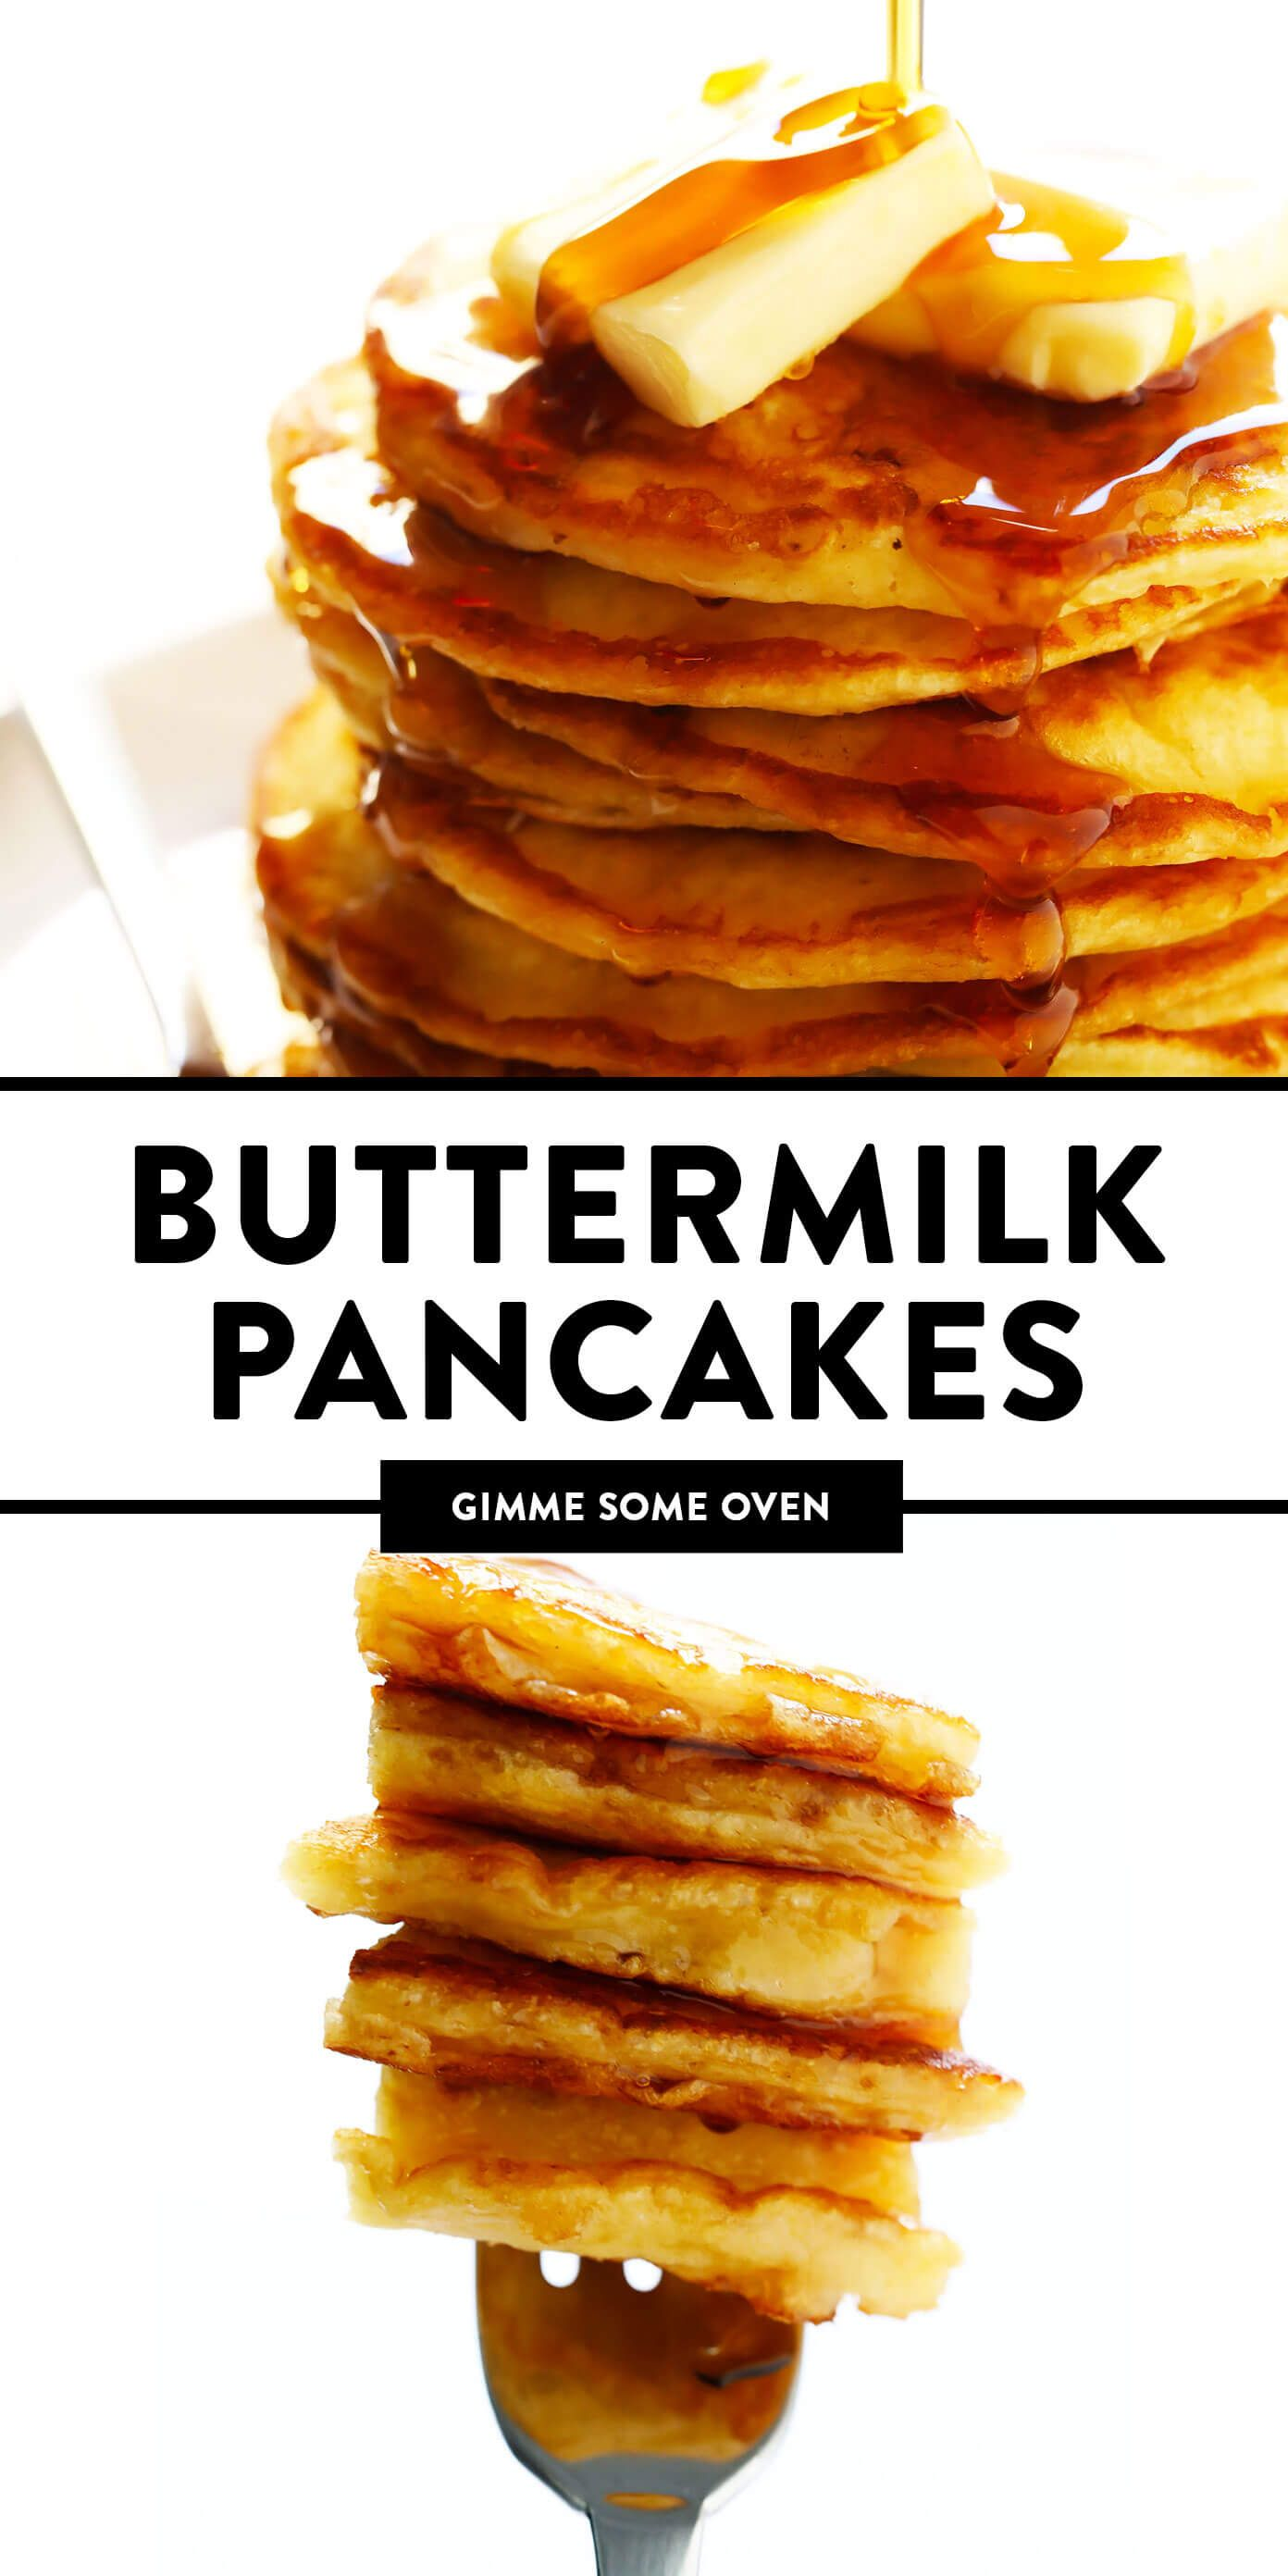 Buttermilk Pancakes Gimme Some Oven Recipe The Best Buttermilk Pancake Recipe Pancake Recipe Easy Pancake Recipe